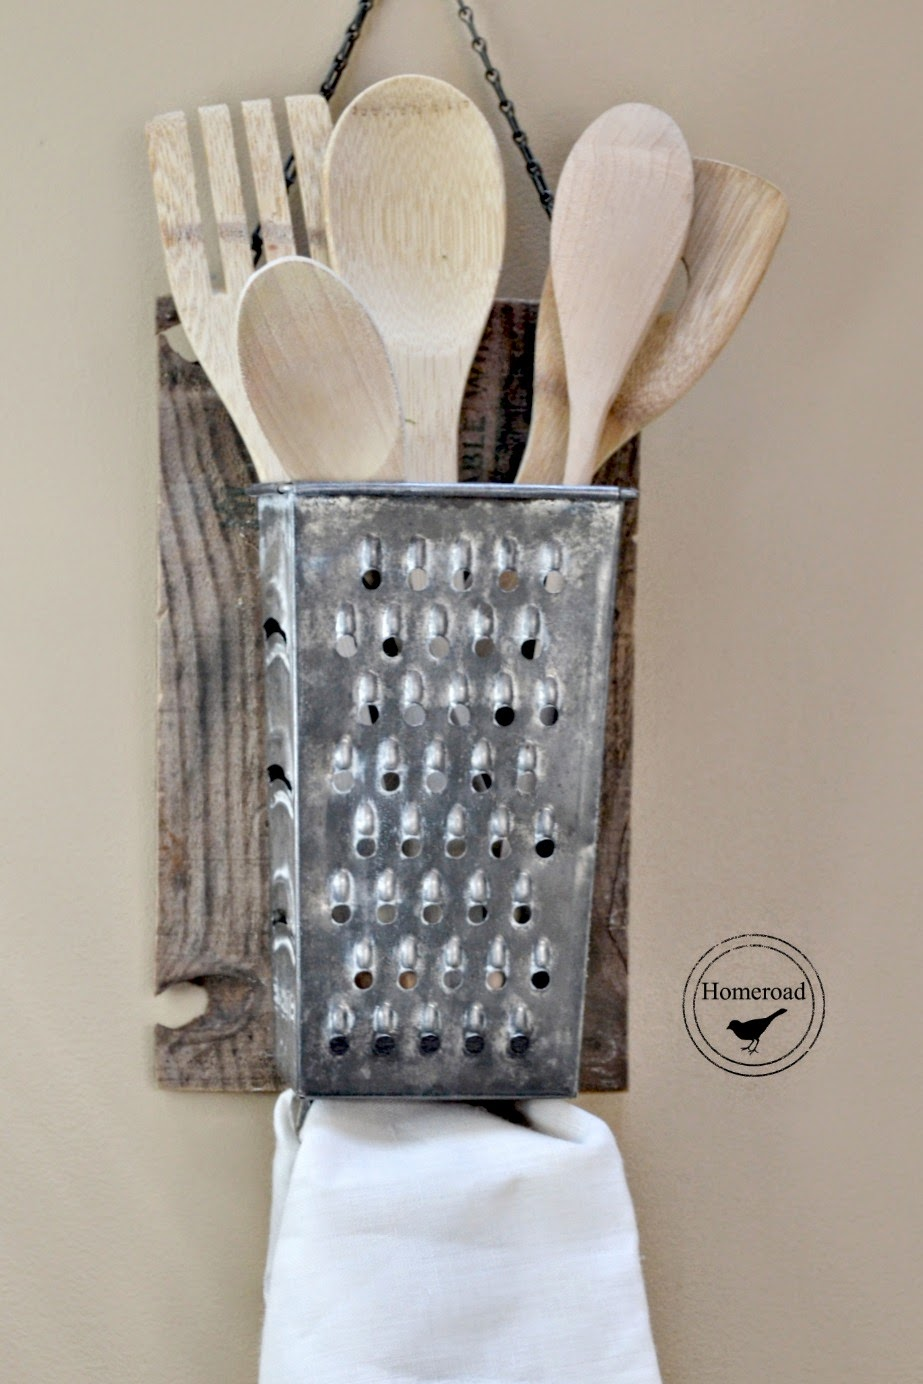 Upcycling Ideas Upcycled Kitchenware Utensils Reduce Reuse Recycle Upcycle Kitchen Vintage Old DIY Cheese Grater Organizer